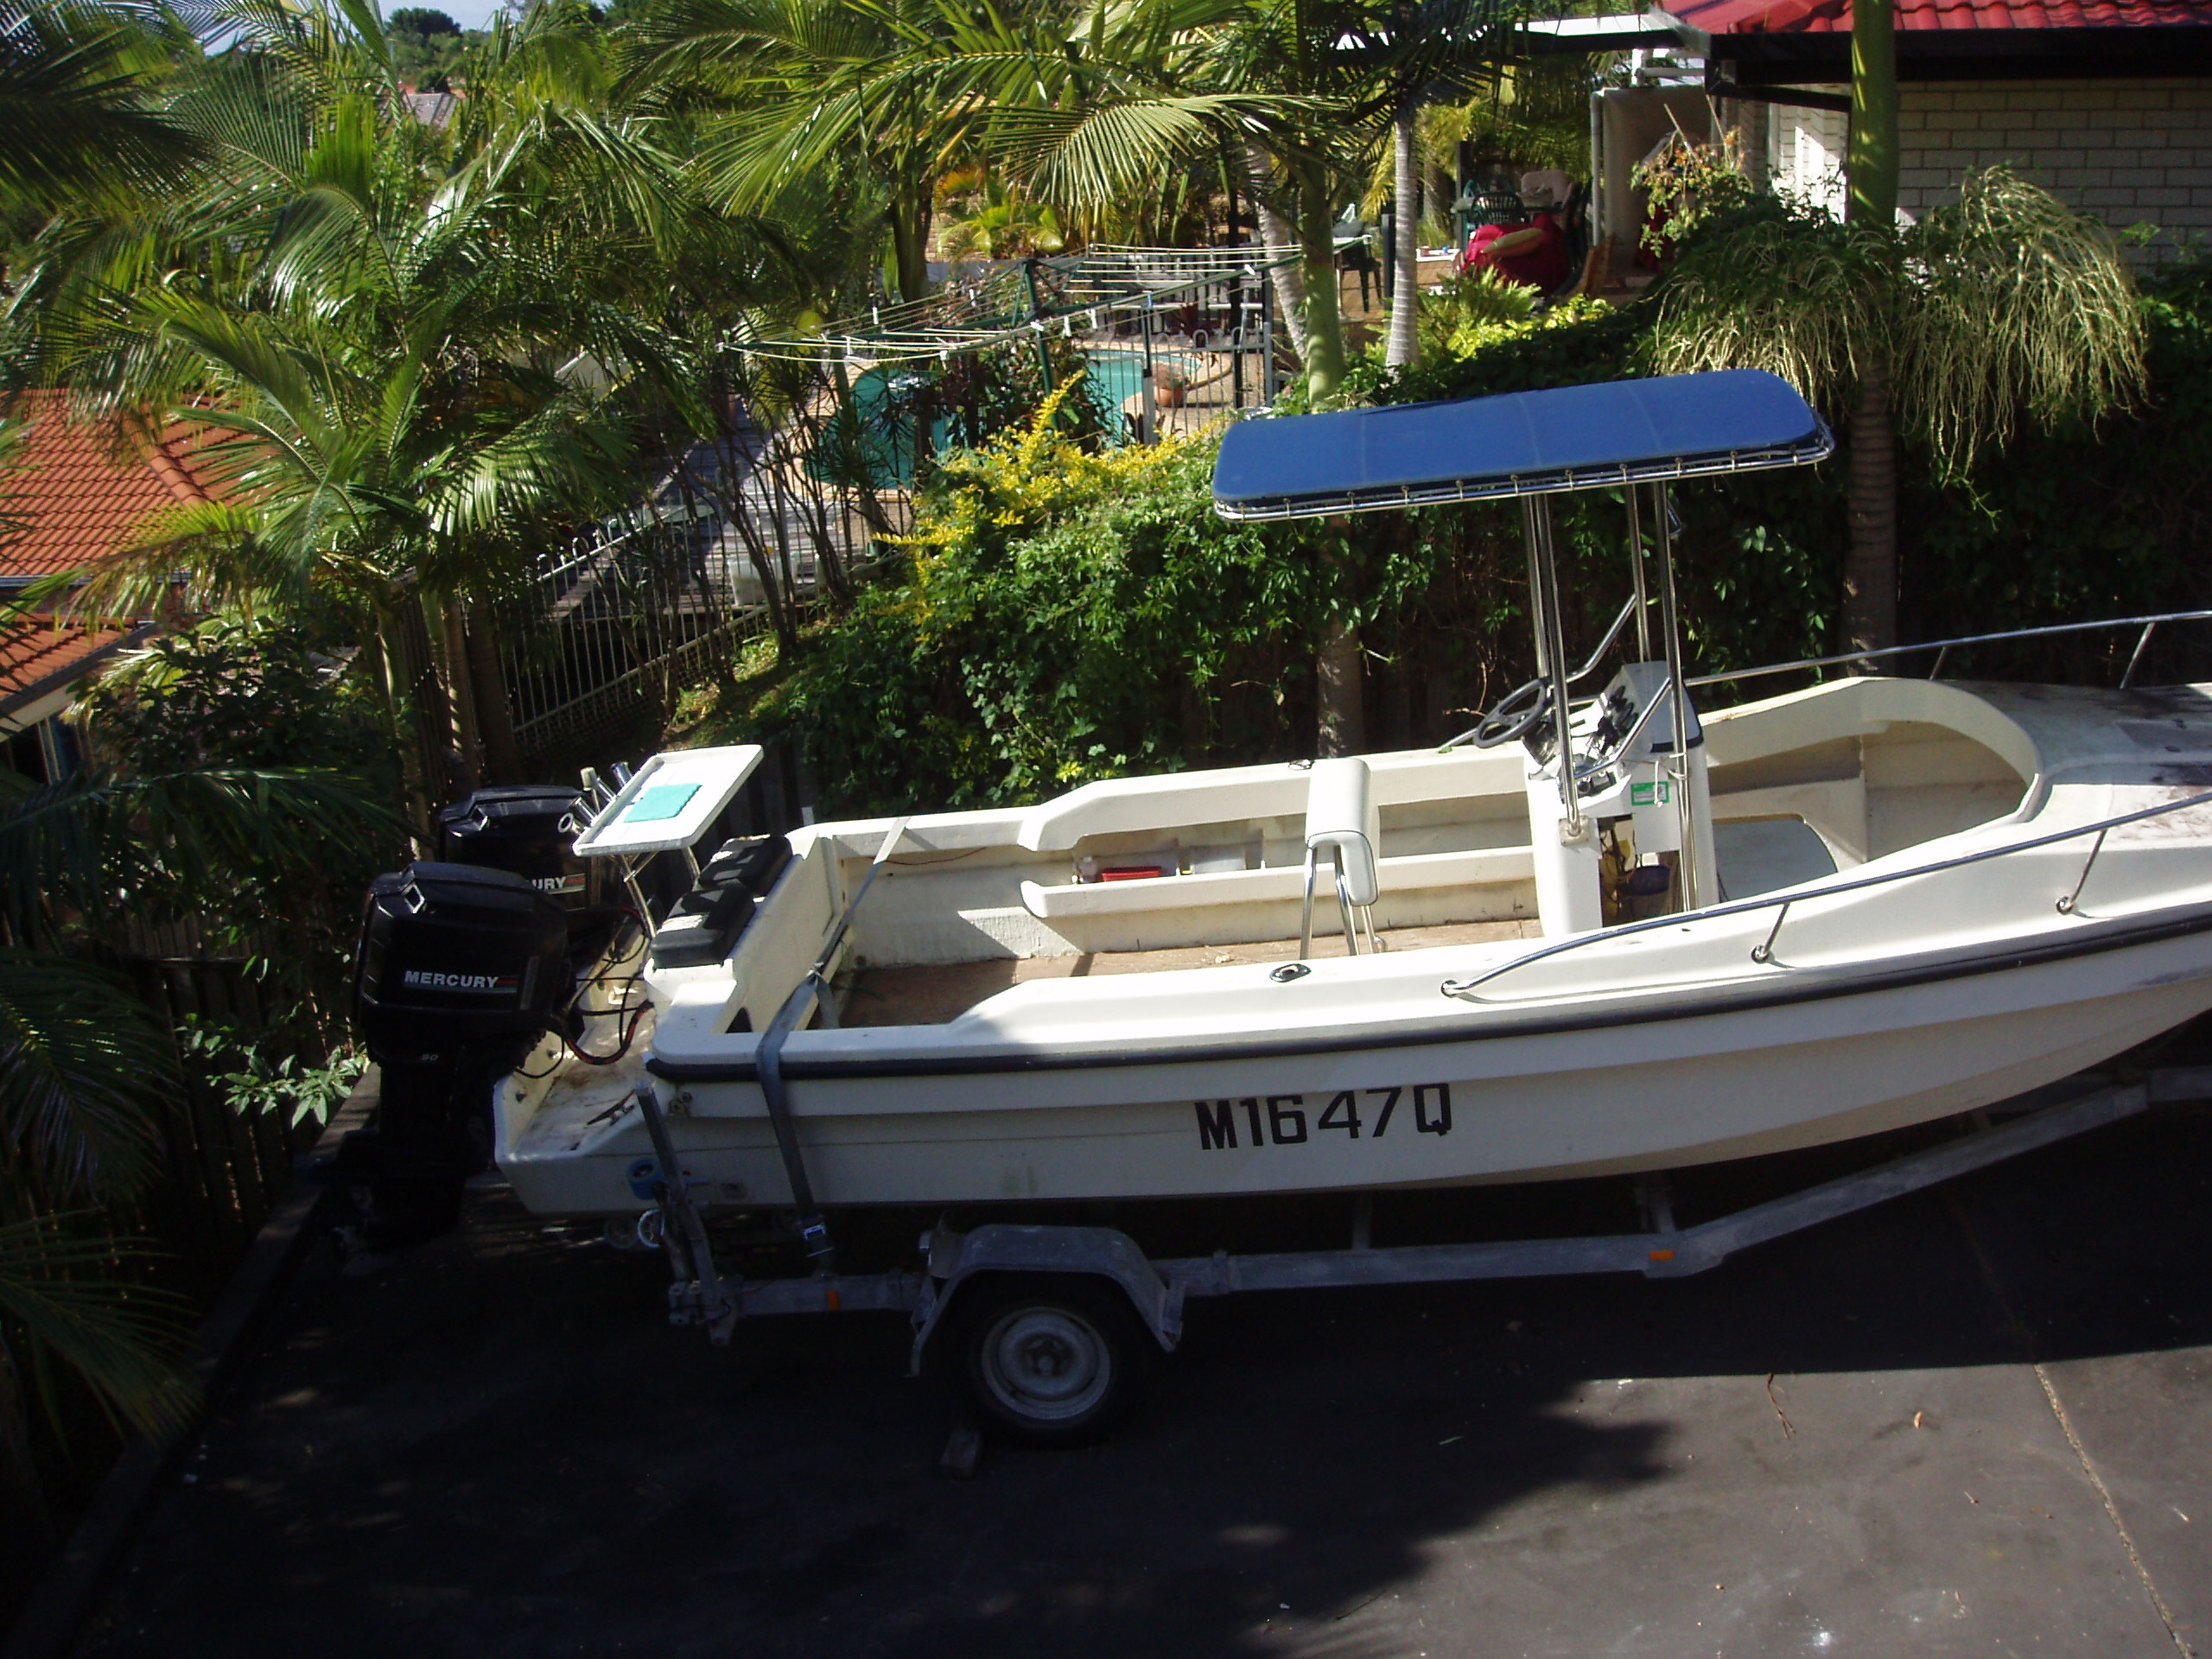 Whaler Tri Hull ,6meter,centre console, twin 90 hp. Power tilt/trim, hydraulic steering, low hrs. Trailer and motors in excellent condition, boat needs a little TLC.